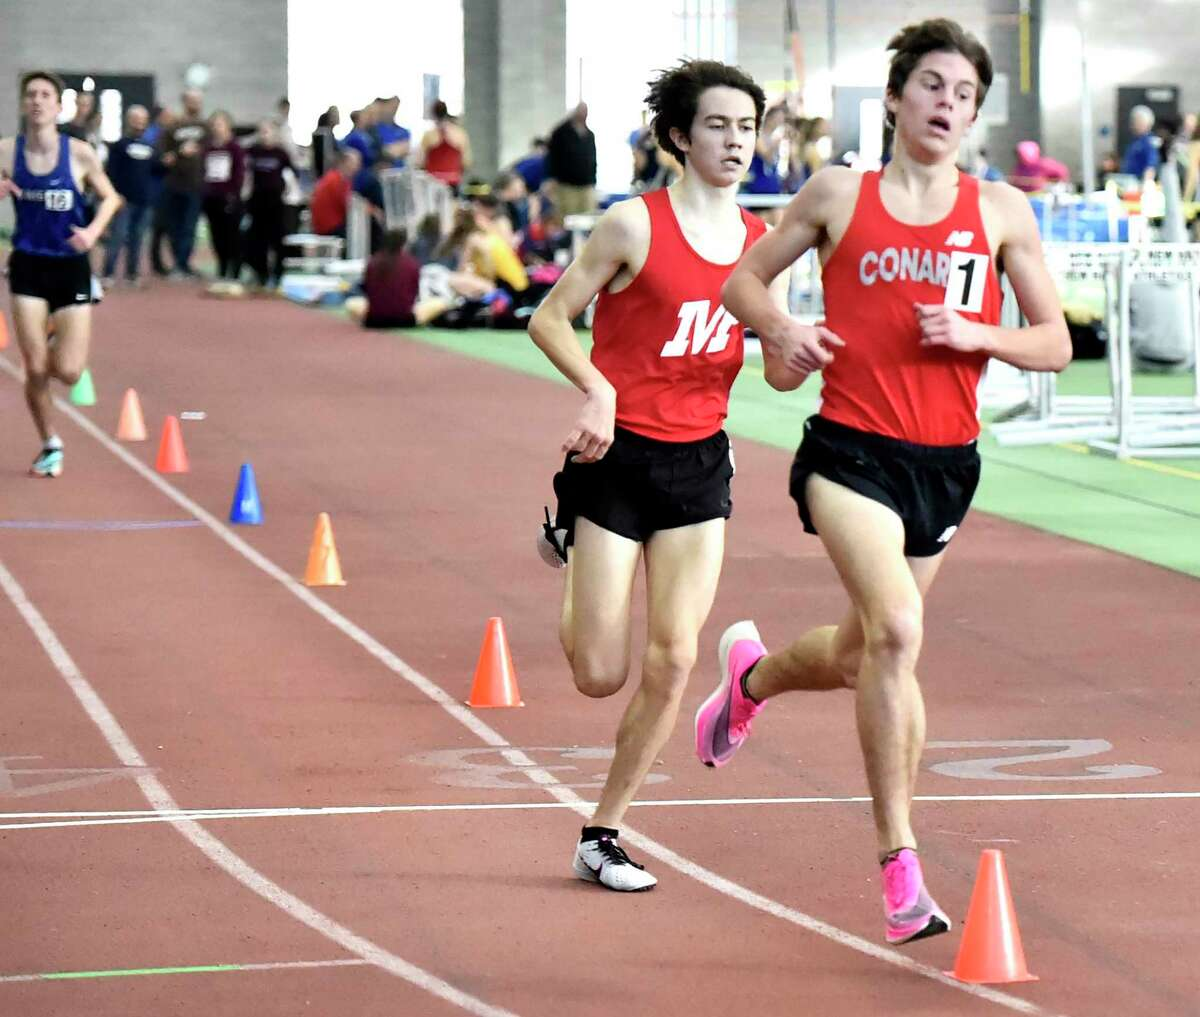 New Haven Connecticut - February 22, 2020: during the CIAC State Open Indoor Track Championship Saturday at the Floyd Little Athletic Center in New Haven.